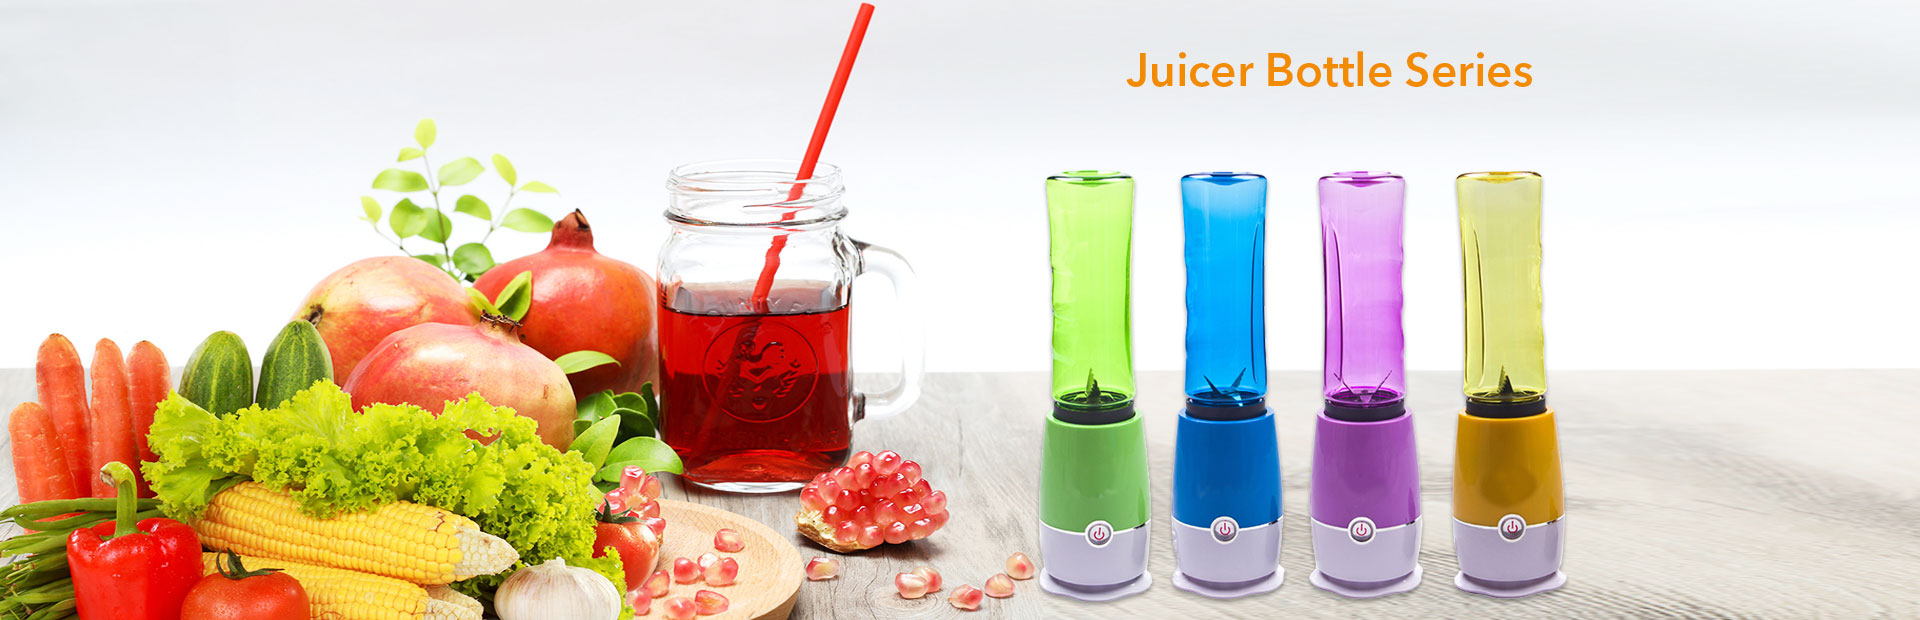 Juicer Bottle Series